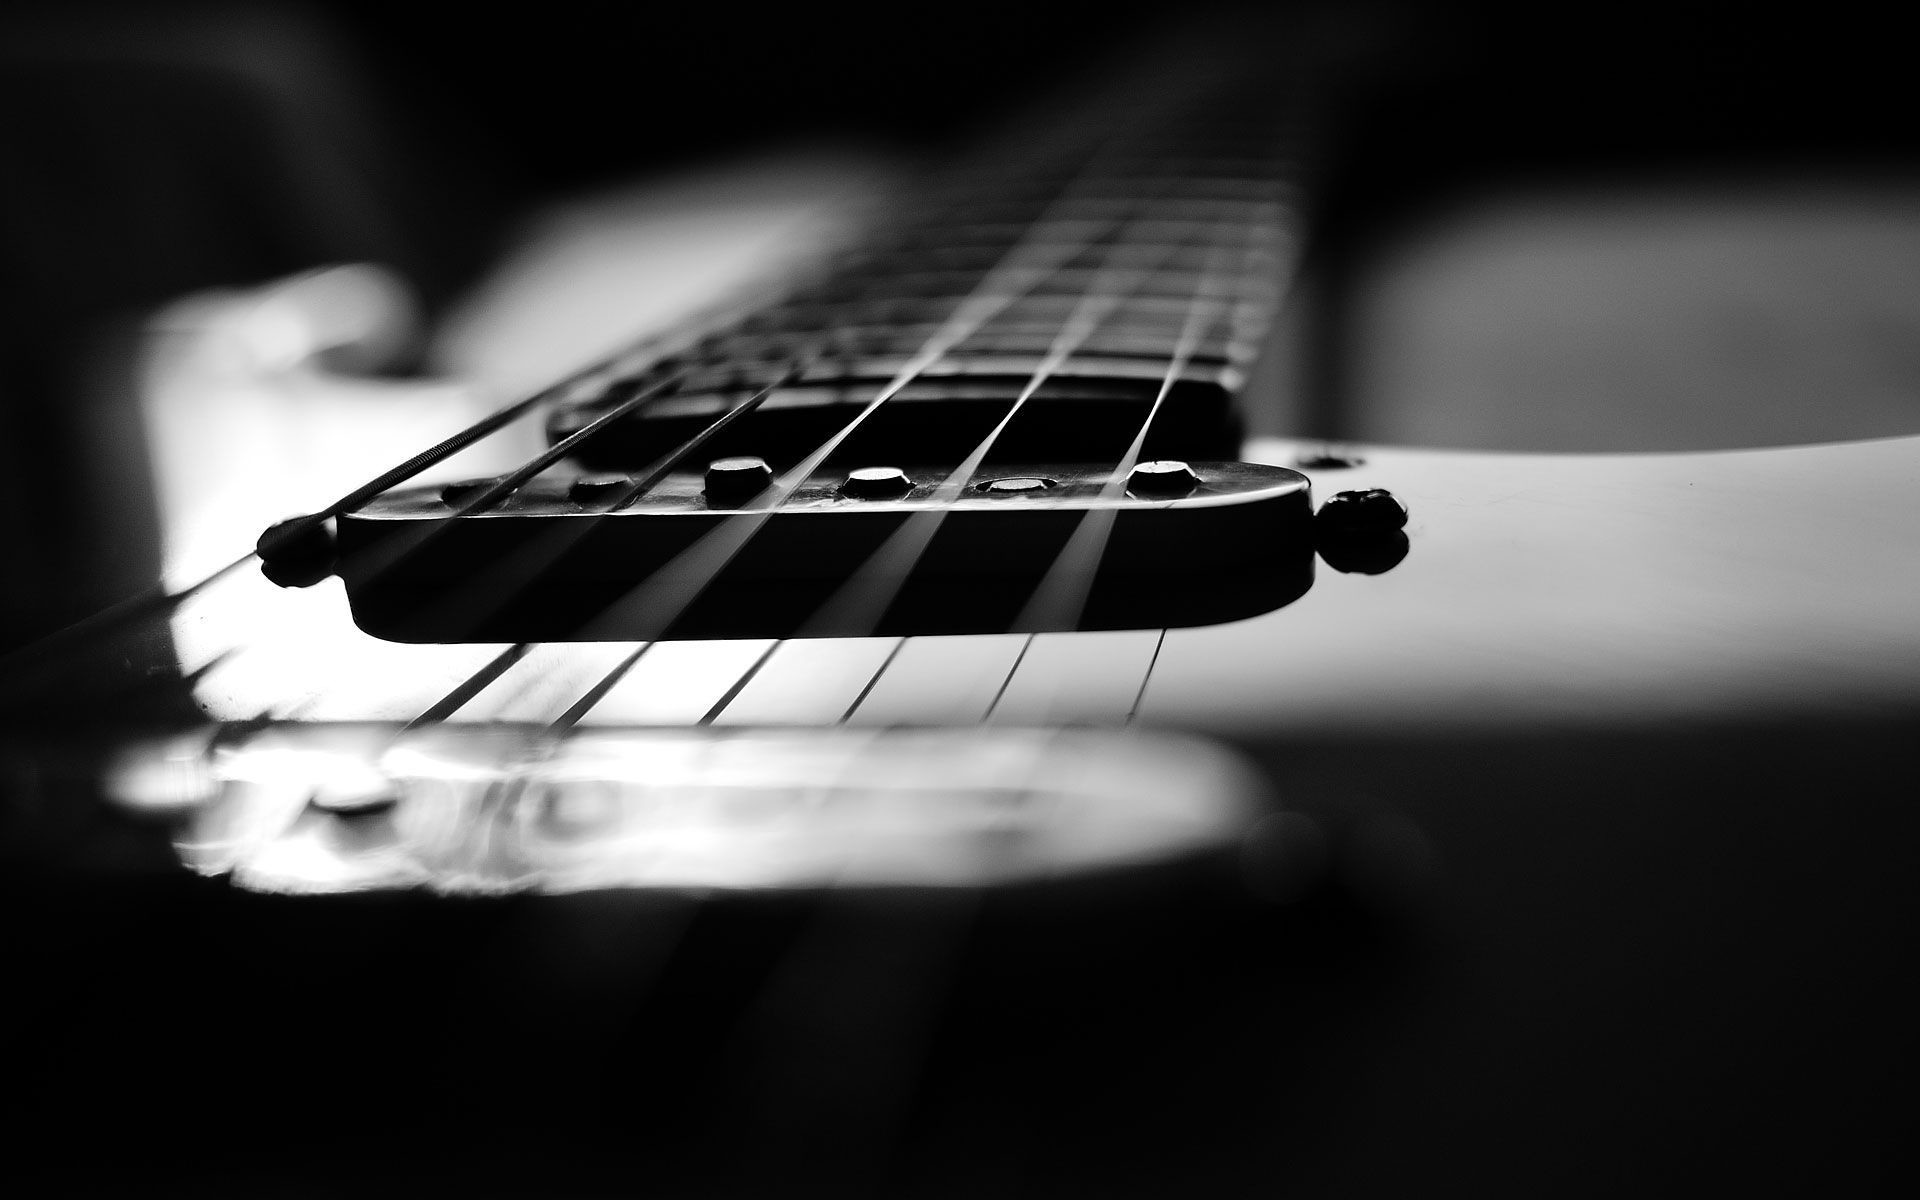 Guitar Wallpaper Black And White – 1836209